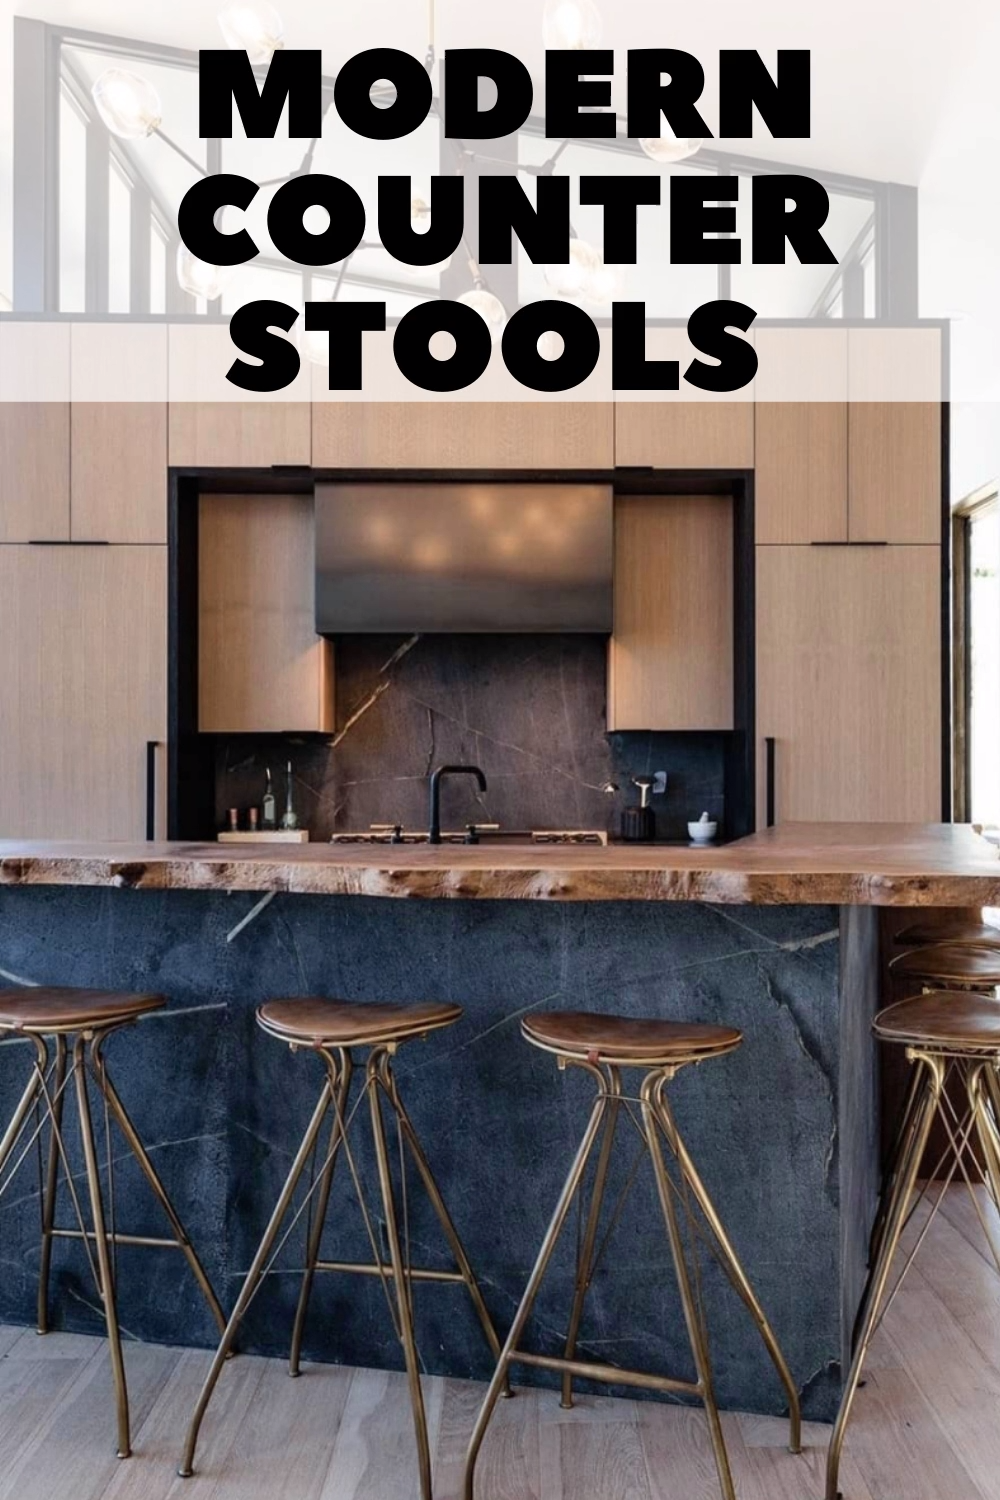 Modern Bar Counter Stools To Upgrade Your Kitchen Video Video In 2021 Modern Bar Modern Counter Stools Counter Stools